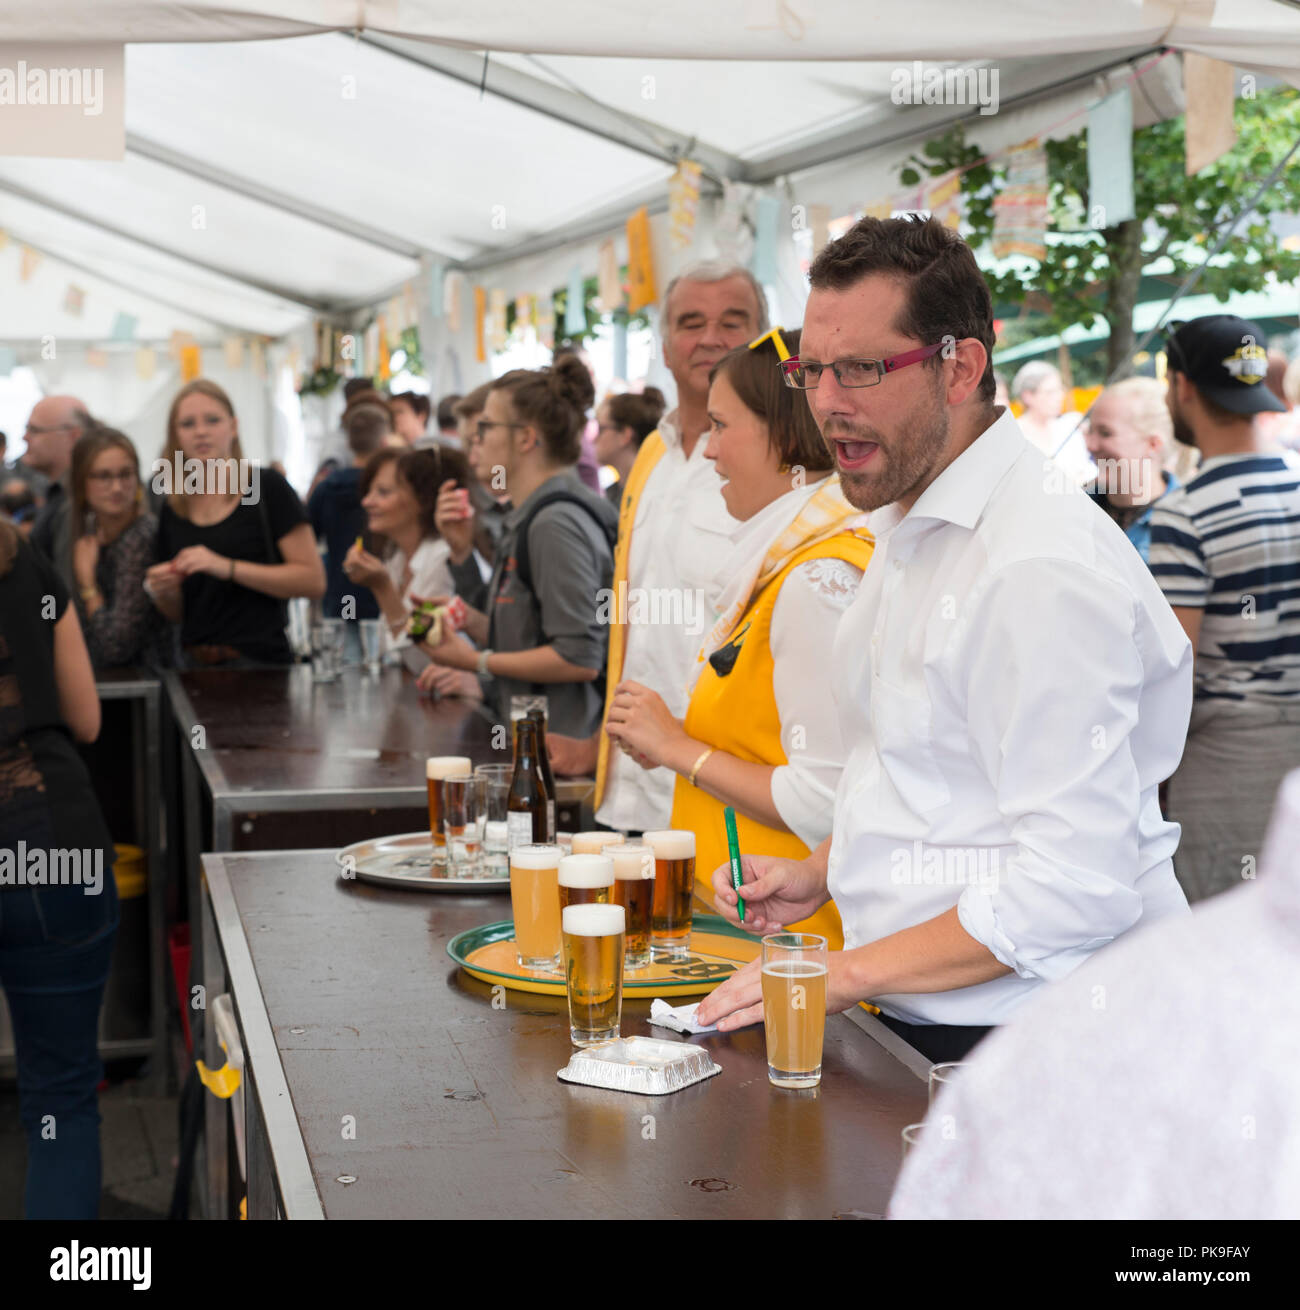 Malmedy,Belgium,15-Aug-2018:waiter at the bar calls for a beer during a event in Malmedy,In august there is big event with music and bars that is visisted also by lot of tourists Stock Photo